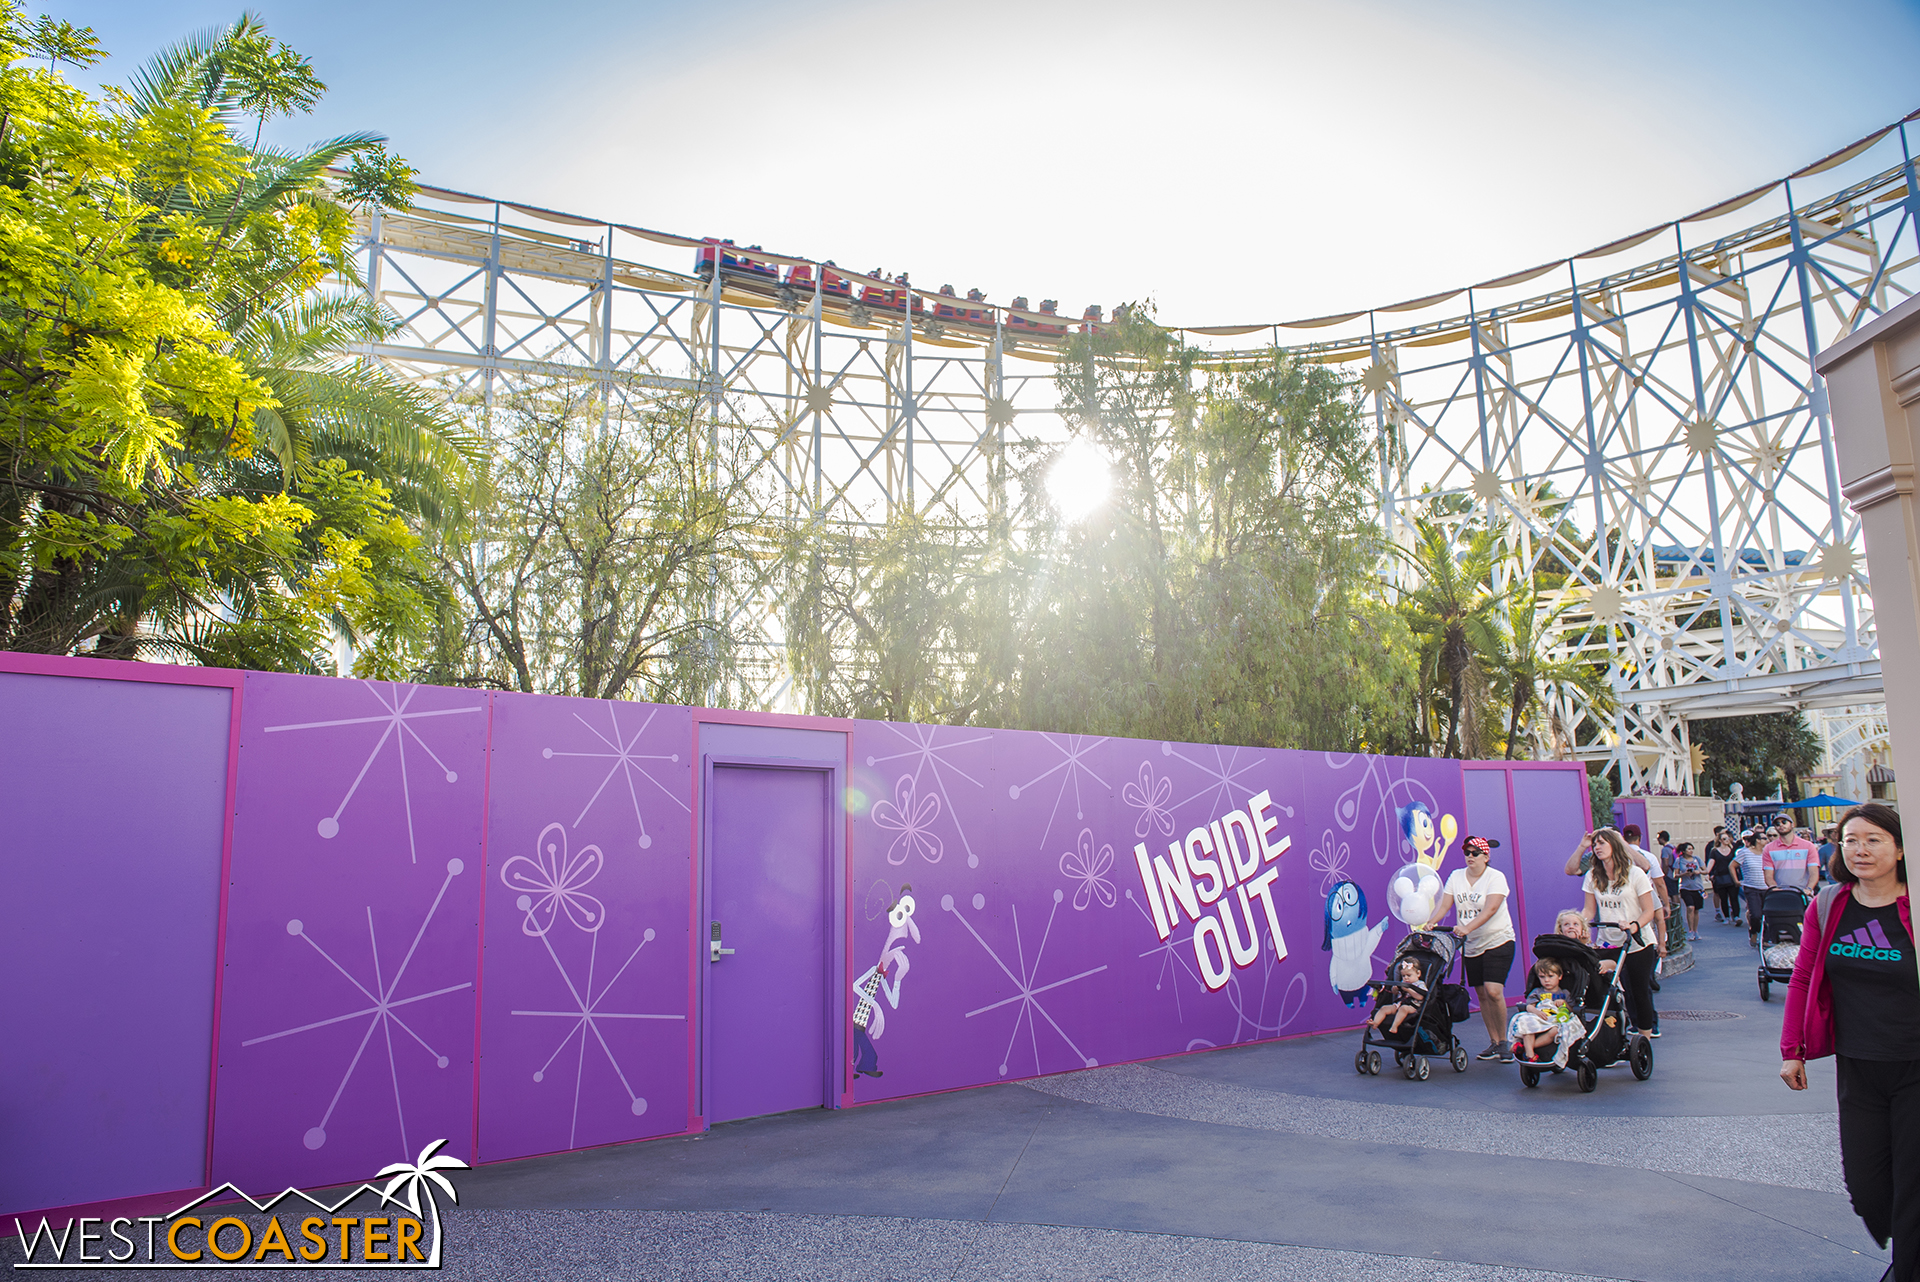 Coming soon, a spinning ride!